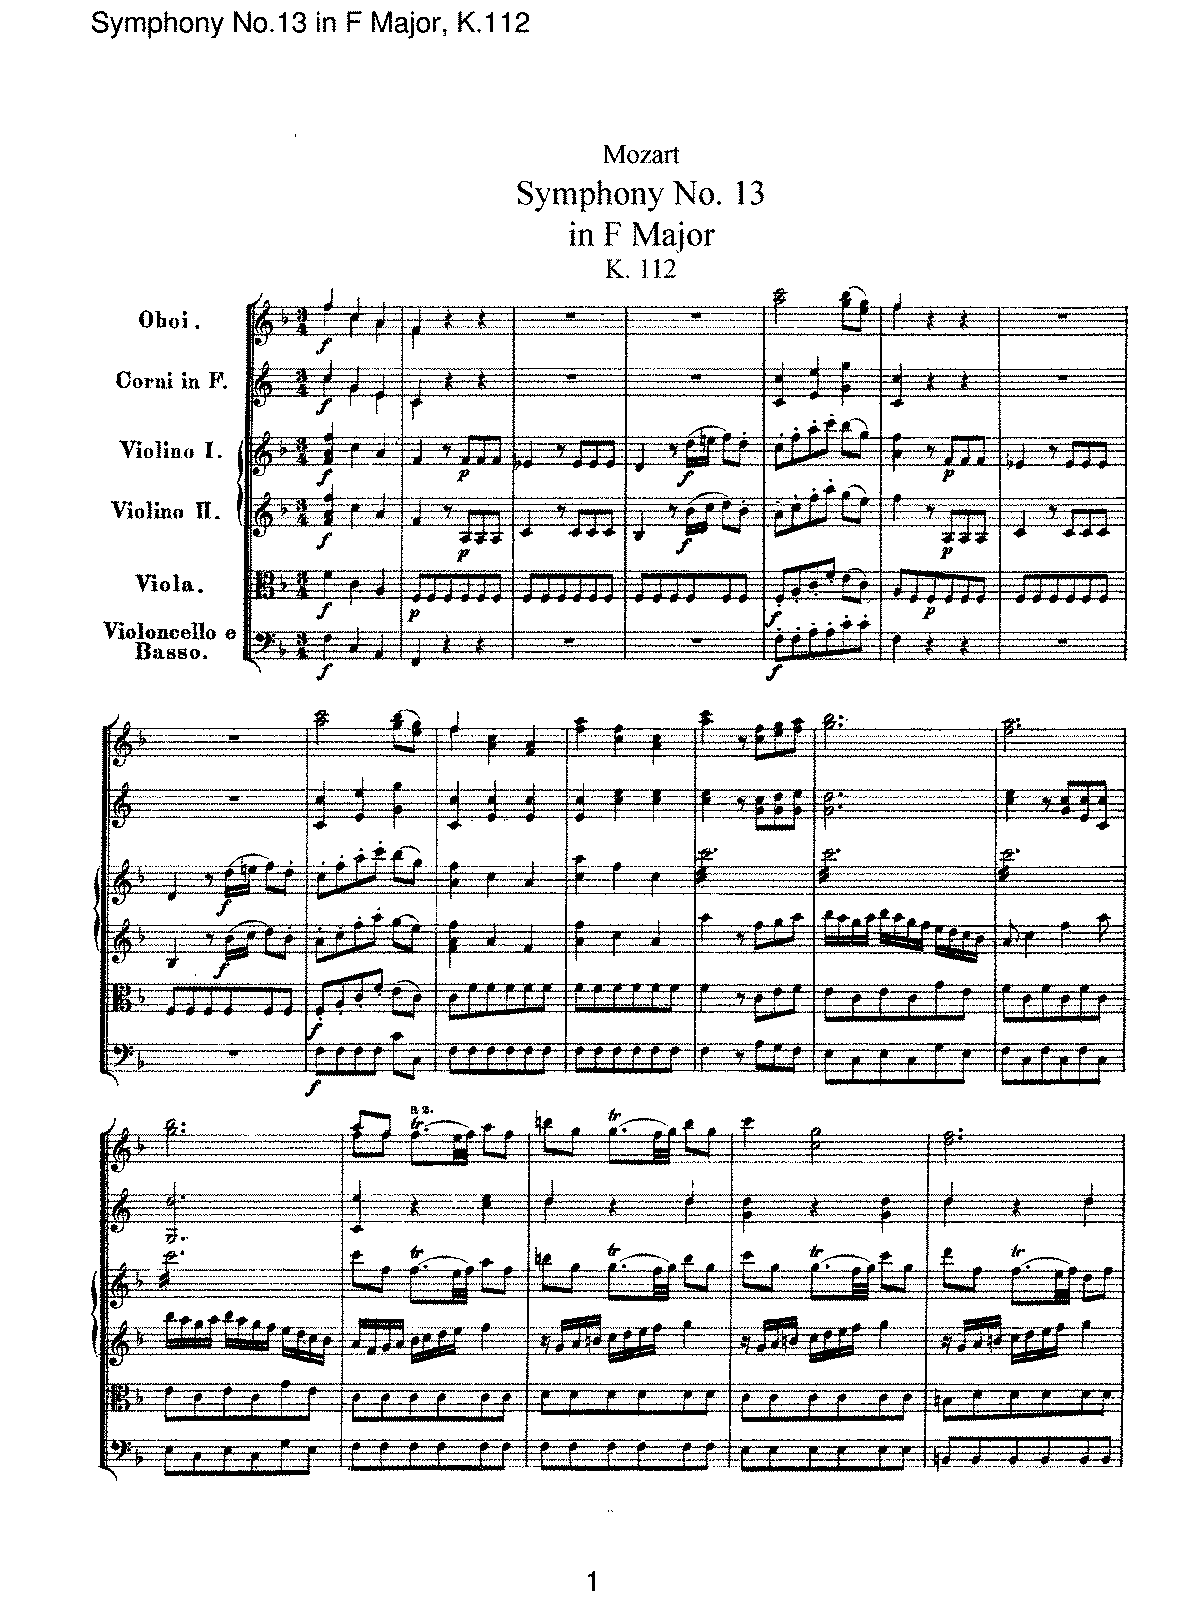 Mozart - Symphony No 13 in F Major, K112.pdf